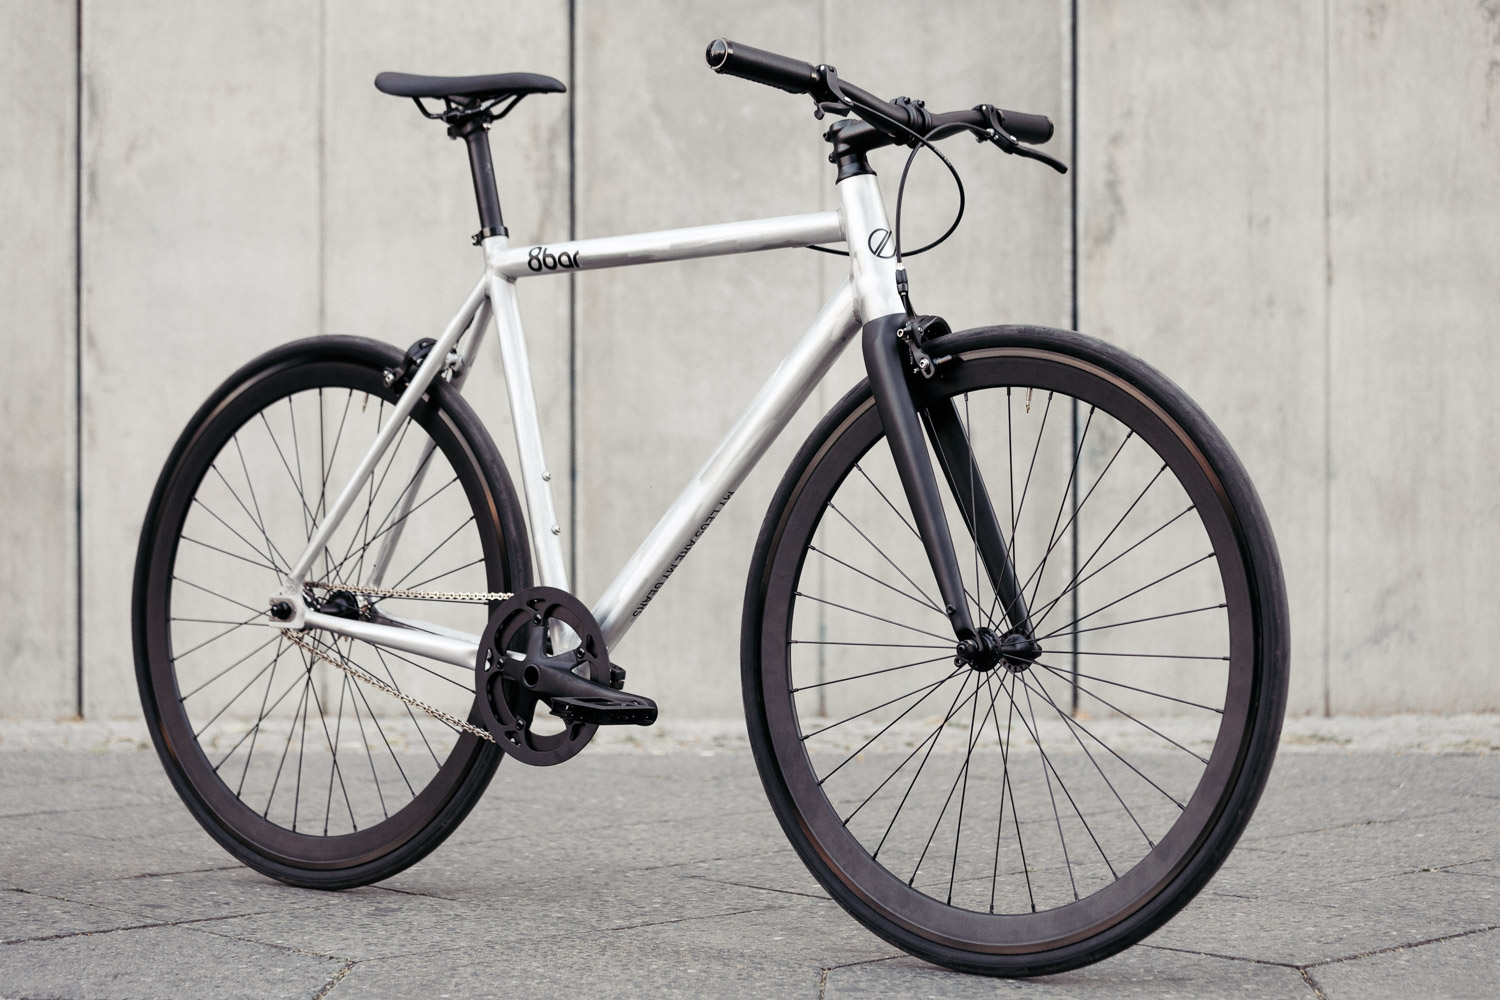 8bar-fhain-lookbook-singlespeed-fixed-gear-fixie-lr-25